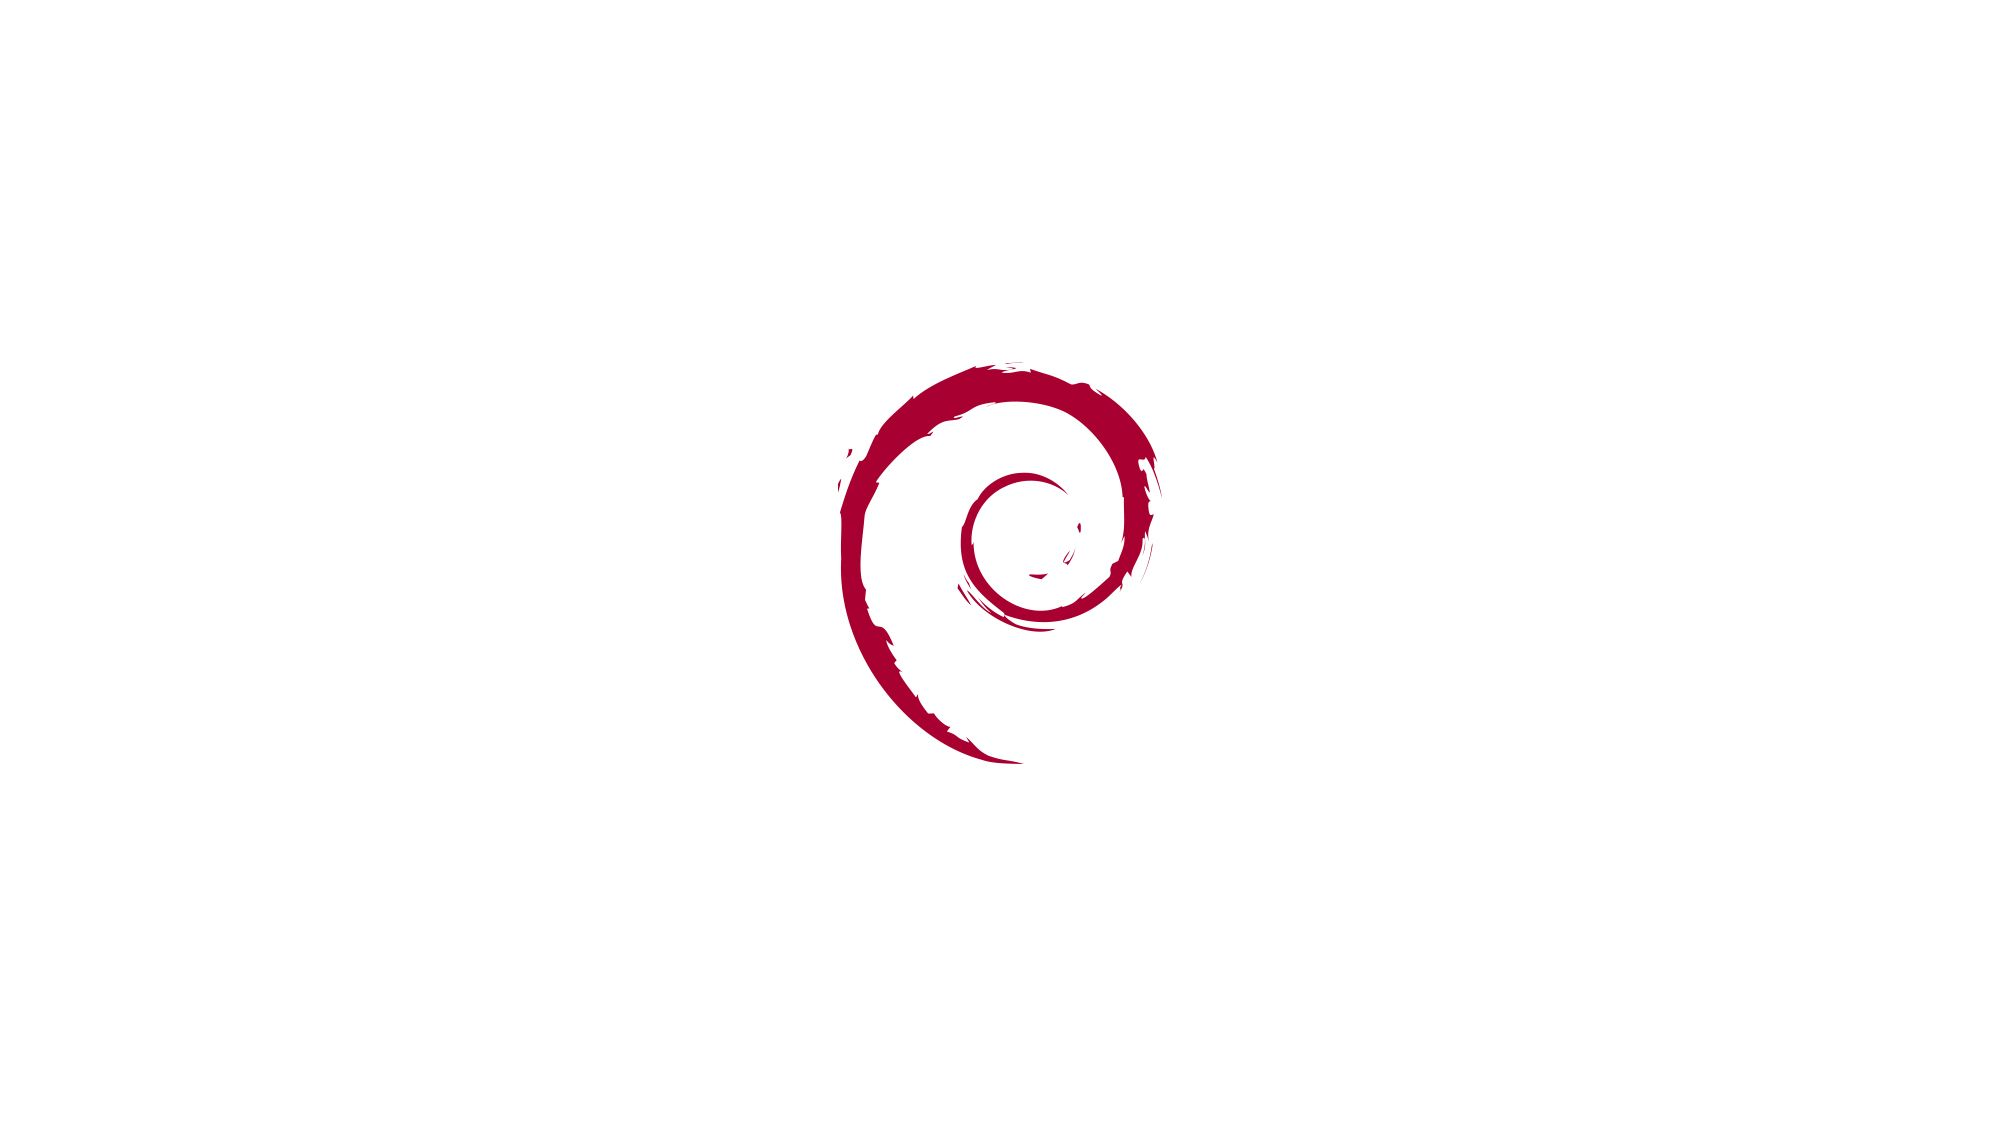 Come configurare l'accesso SSH senza password su Debian 10